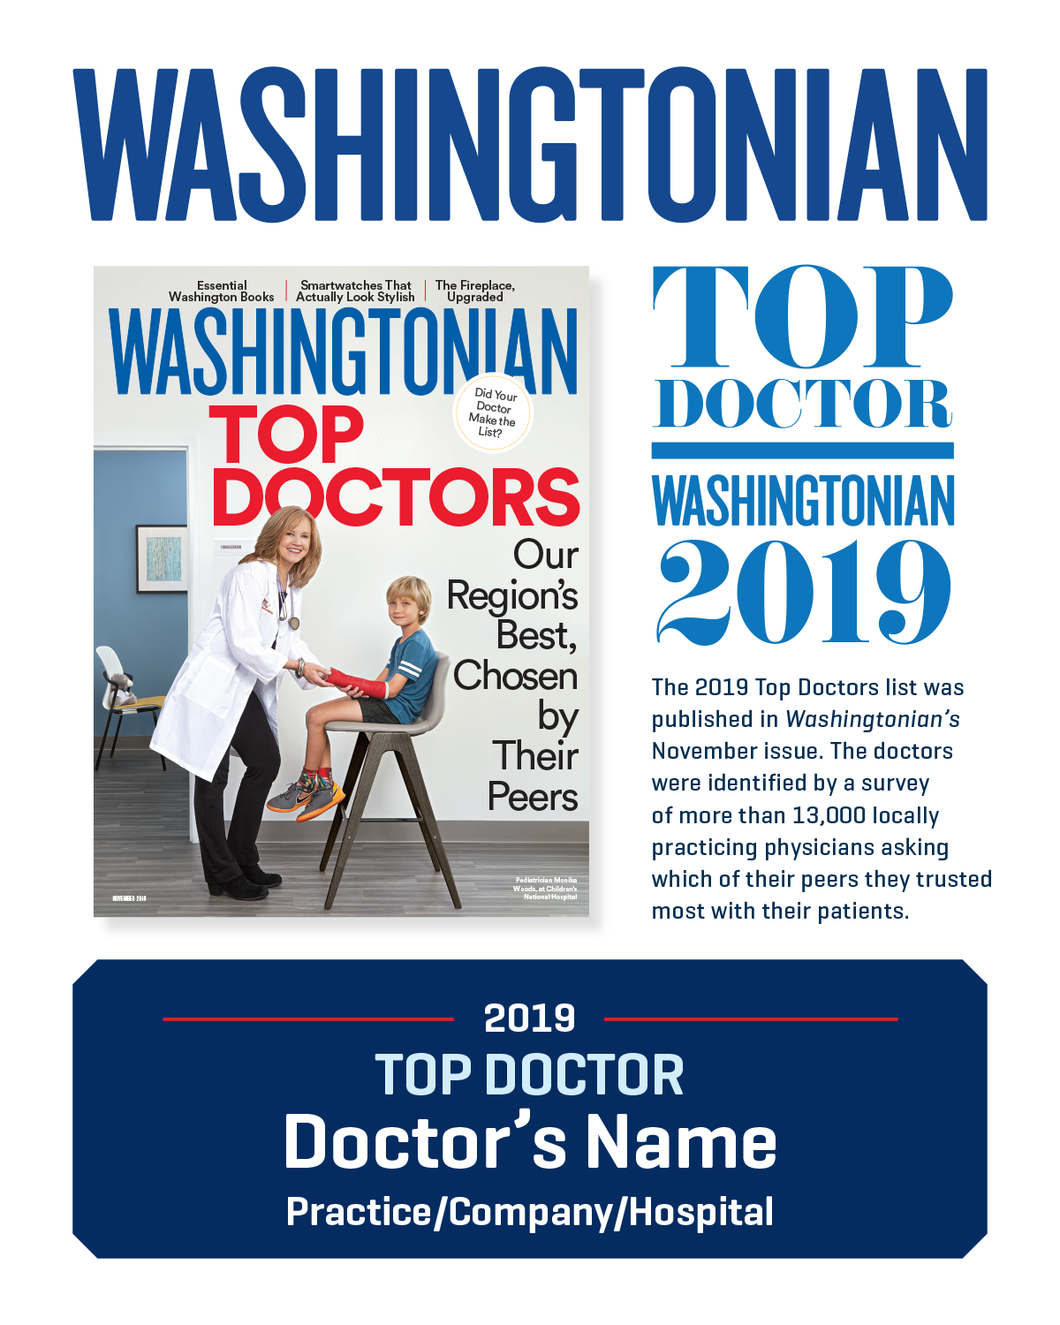 Copy of Washingtonian Top Doctor Plaque